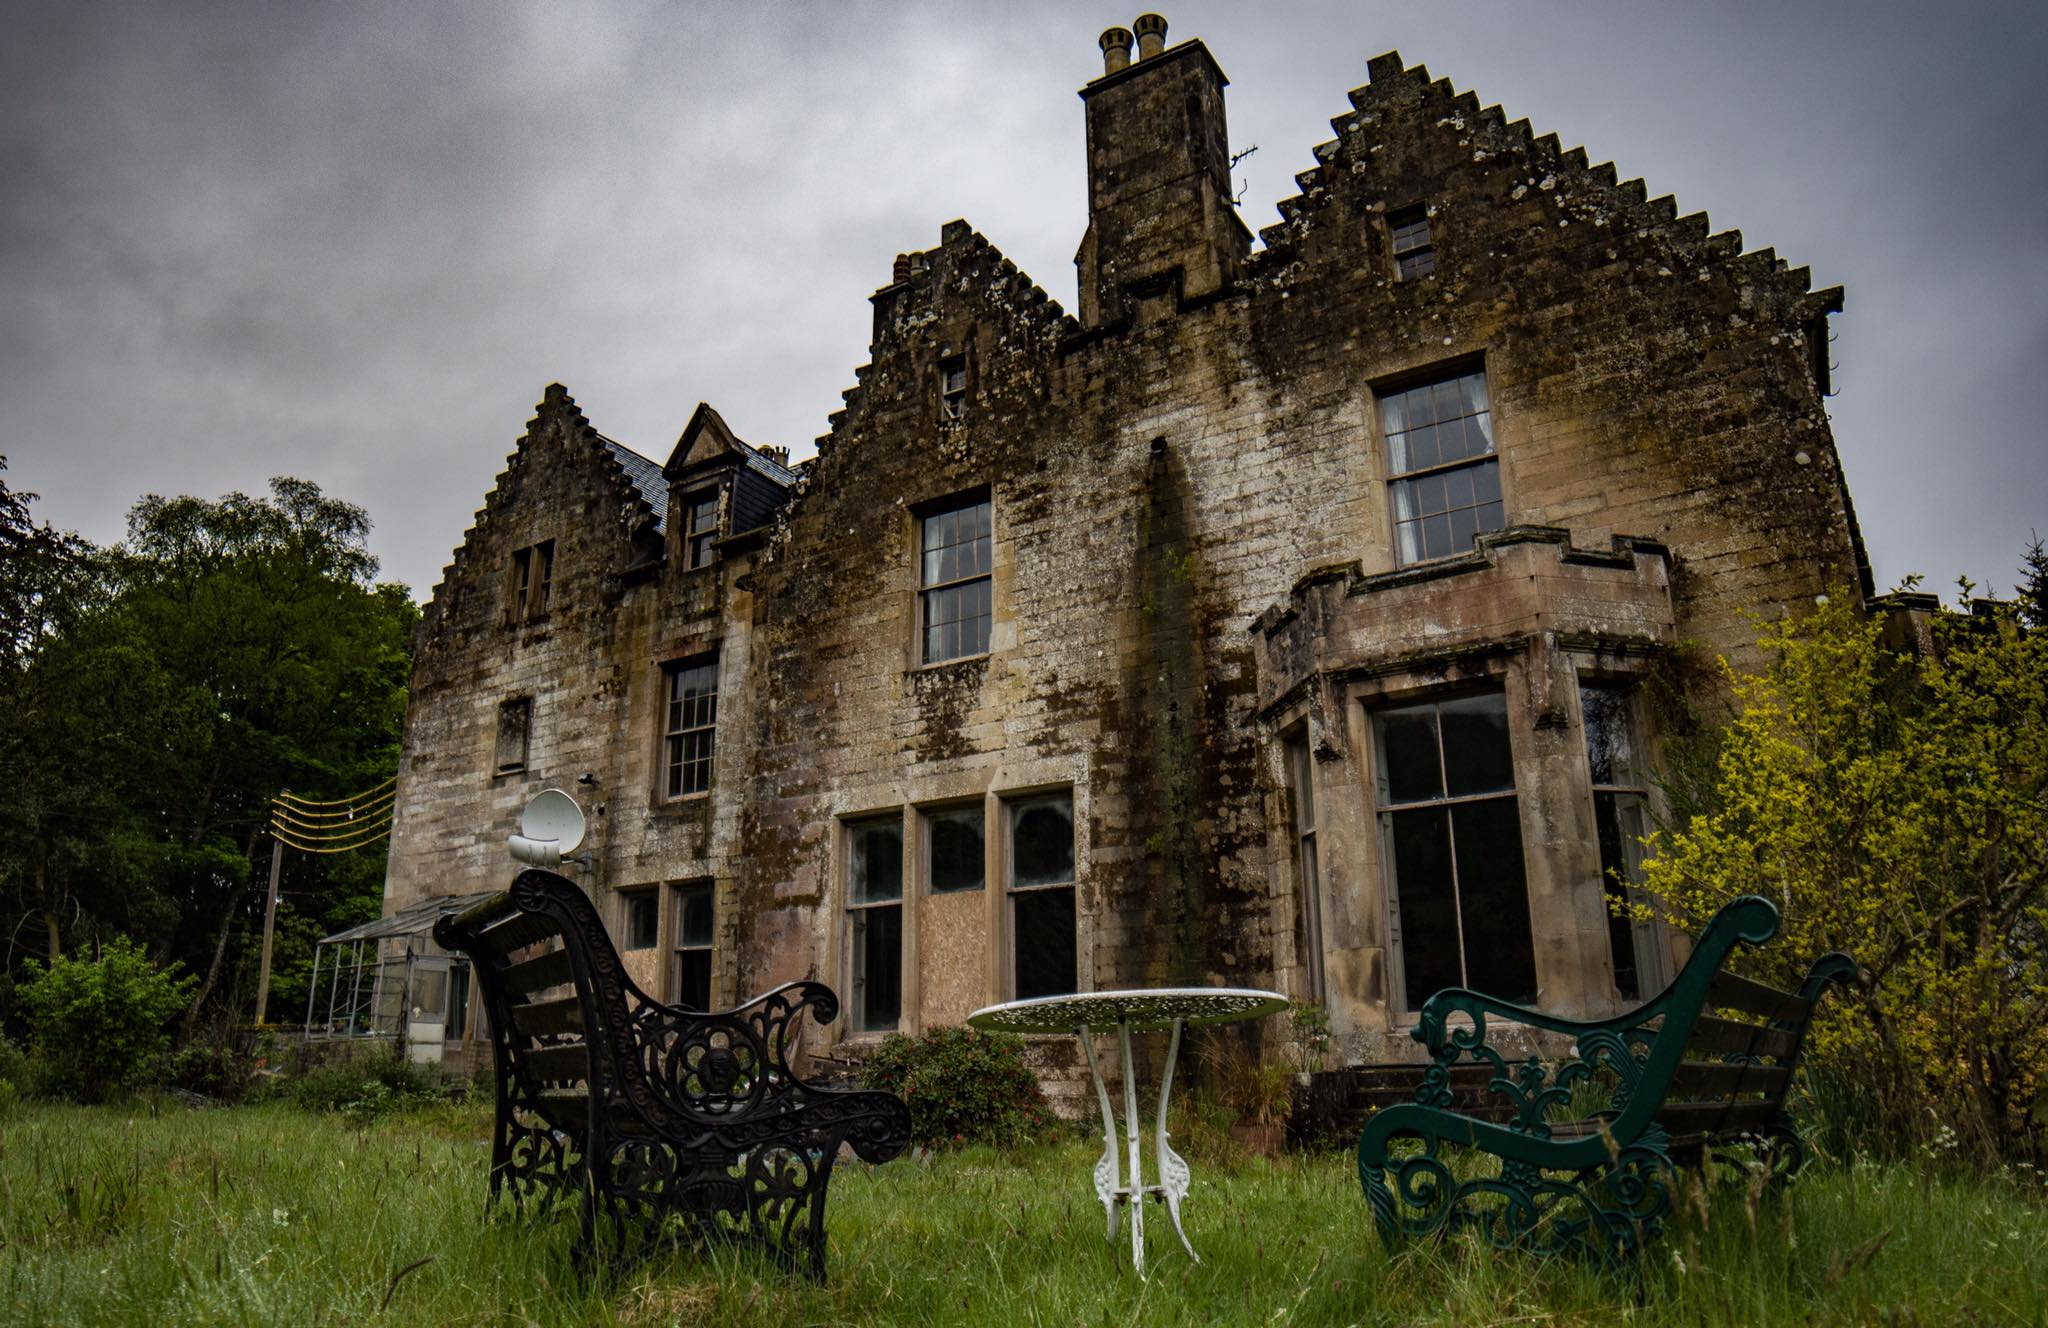 stunning photos show abandoned mansion designed by famous scottish architect deadline news. Black Bedroom Furniture Sets. Home Design Ideas